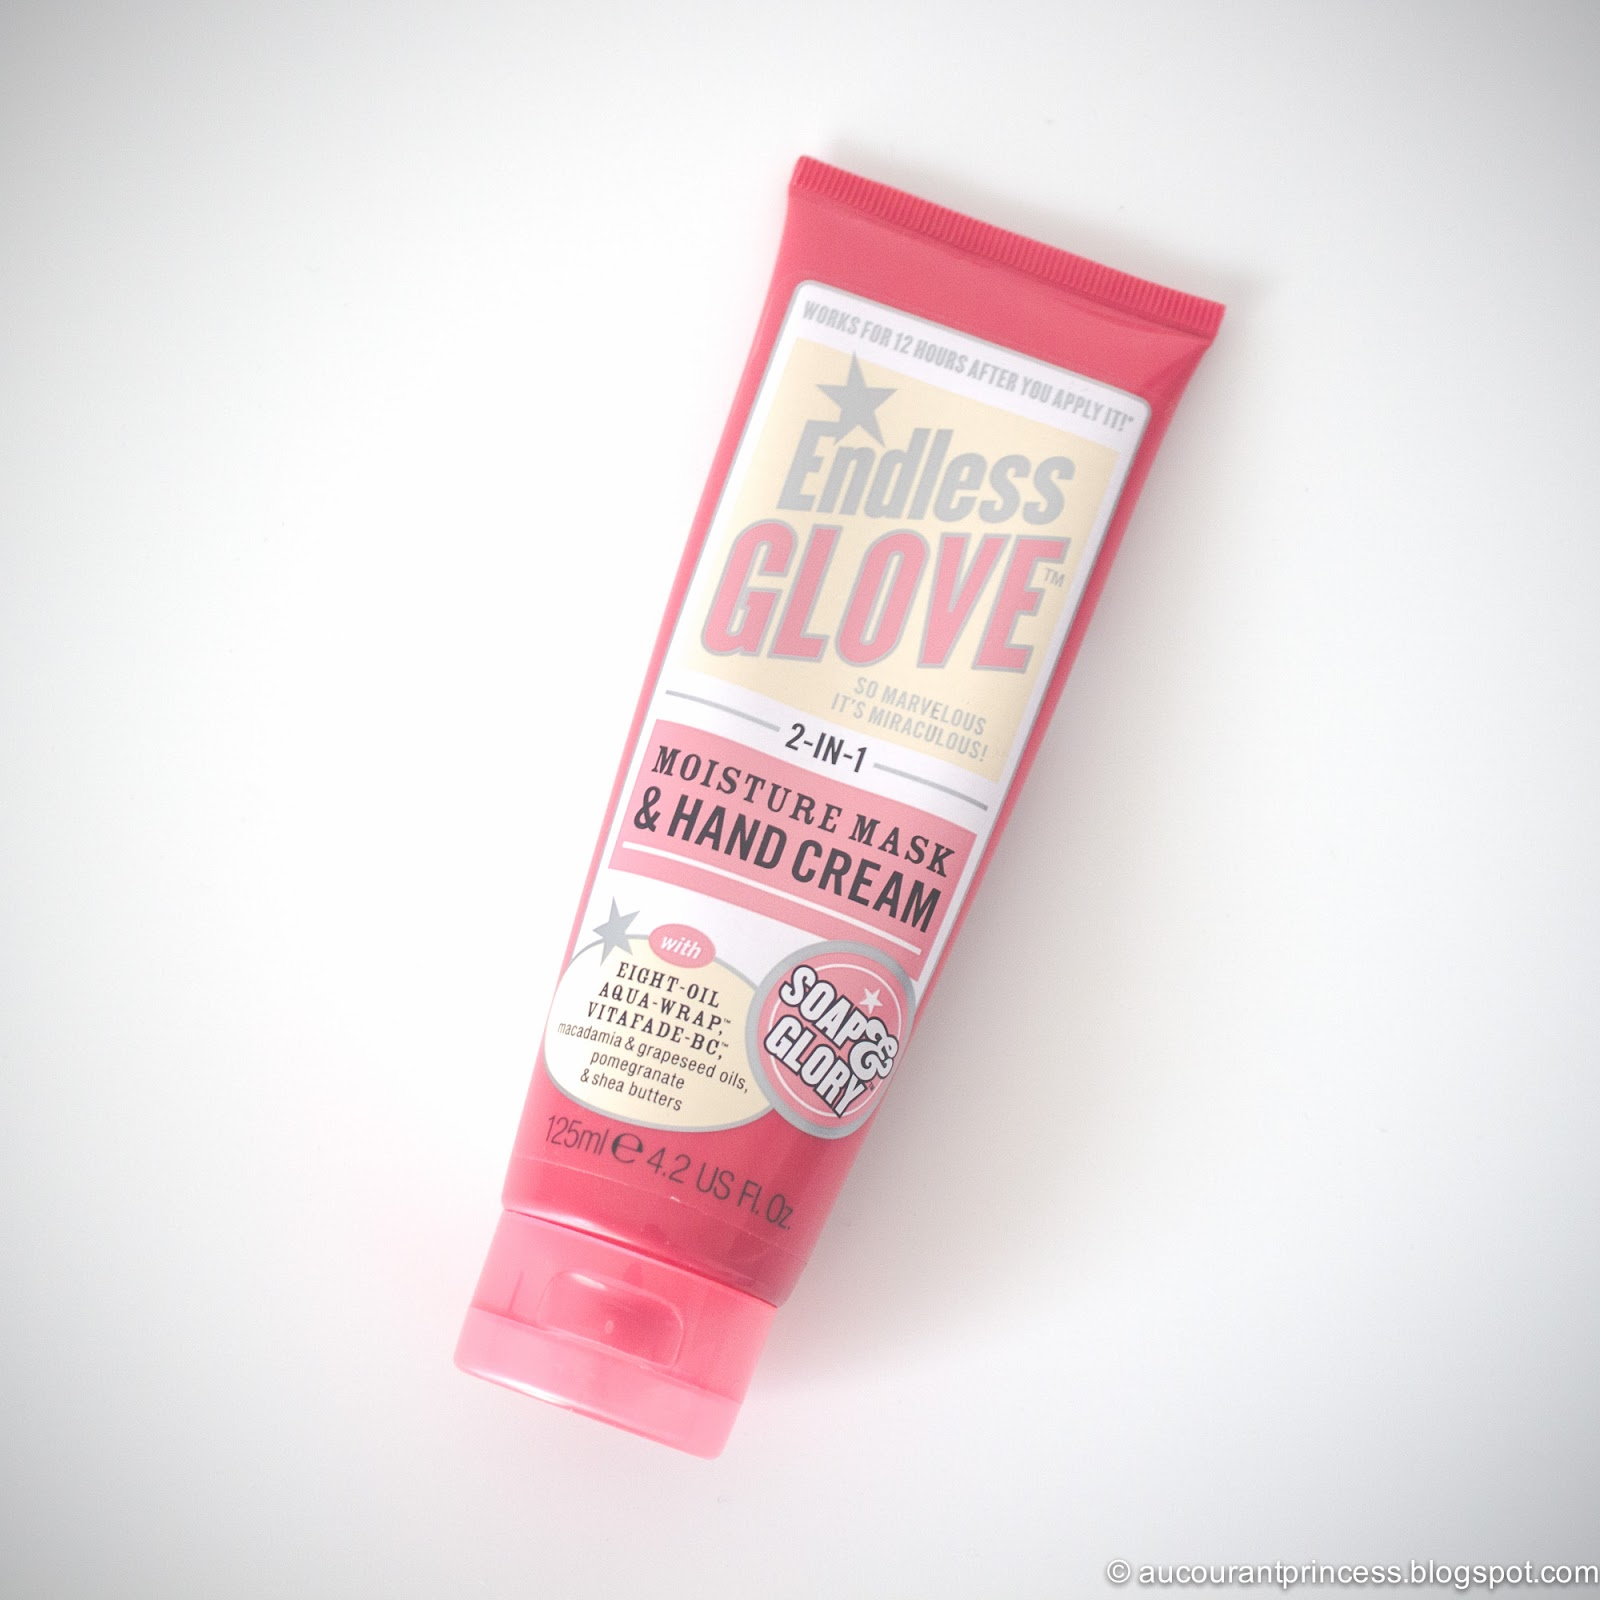 Soap & Glory Endless Glove 2 in 1 Moisture Mask & Hand Cream Product Review